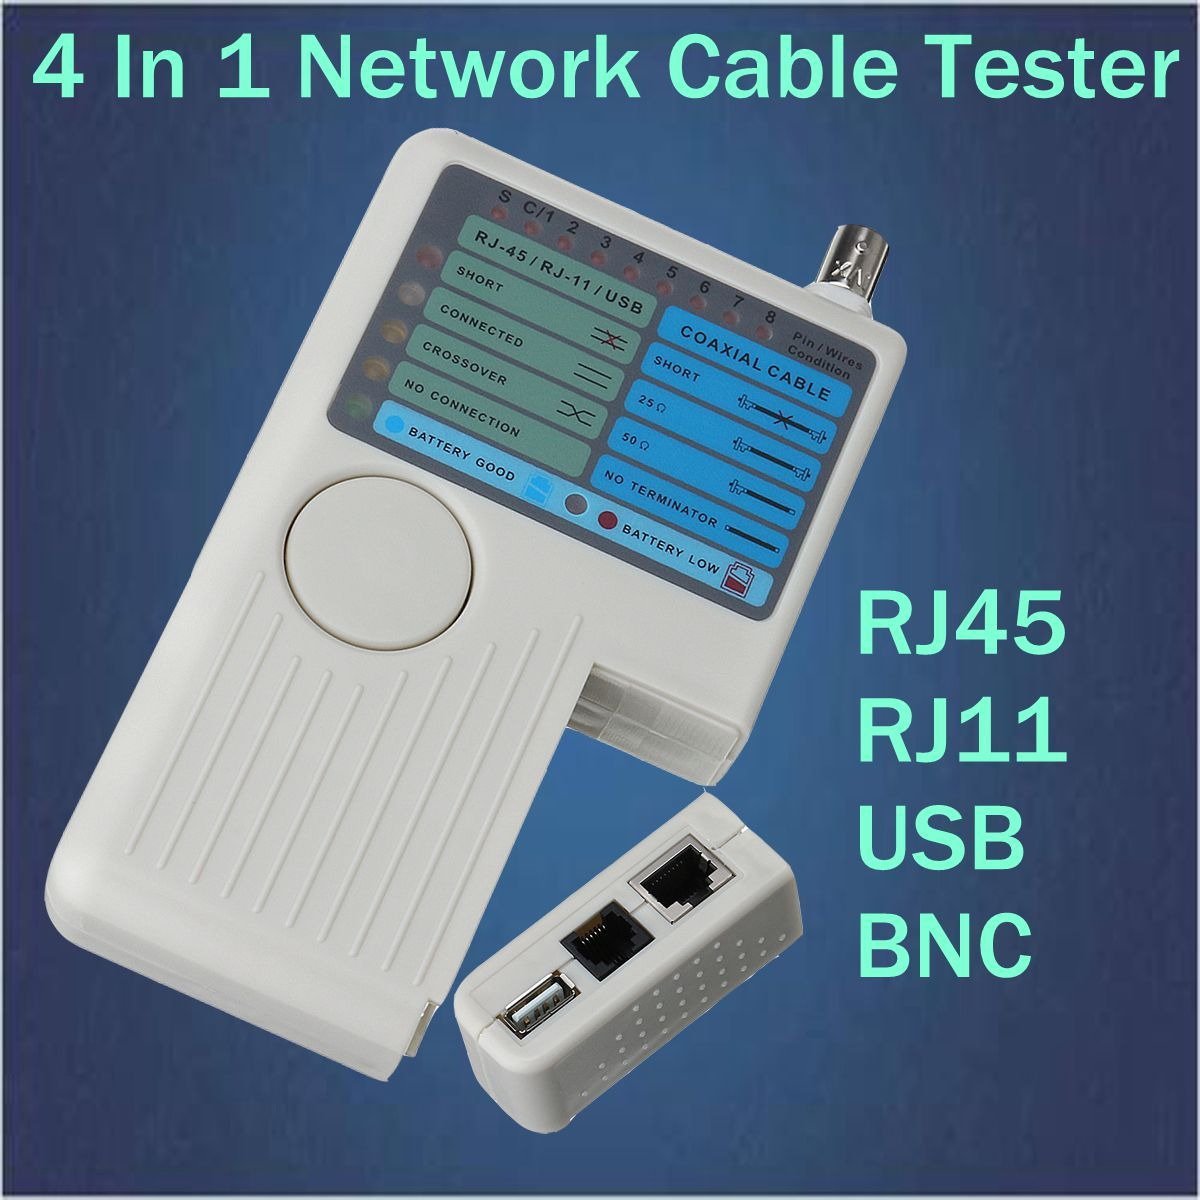 small resolution of 4 in 1 network cable rj45 rj11 usb bnc lan cable cat5 cat6 wire network cable tester banggood 4 in 1 network cable rj45 rj11 usb bnc lan cable